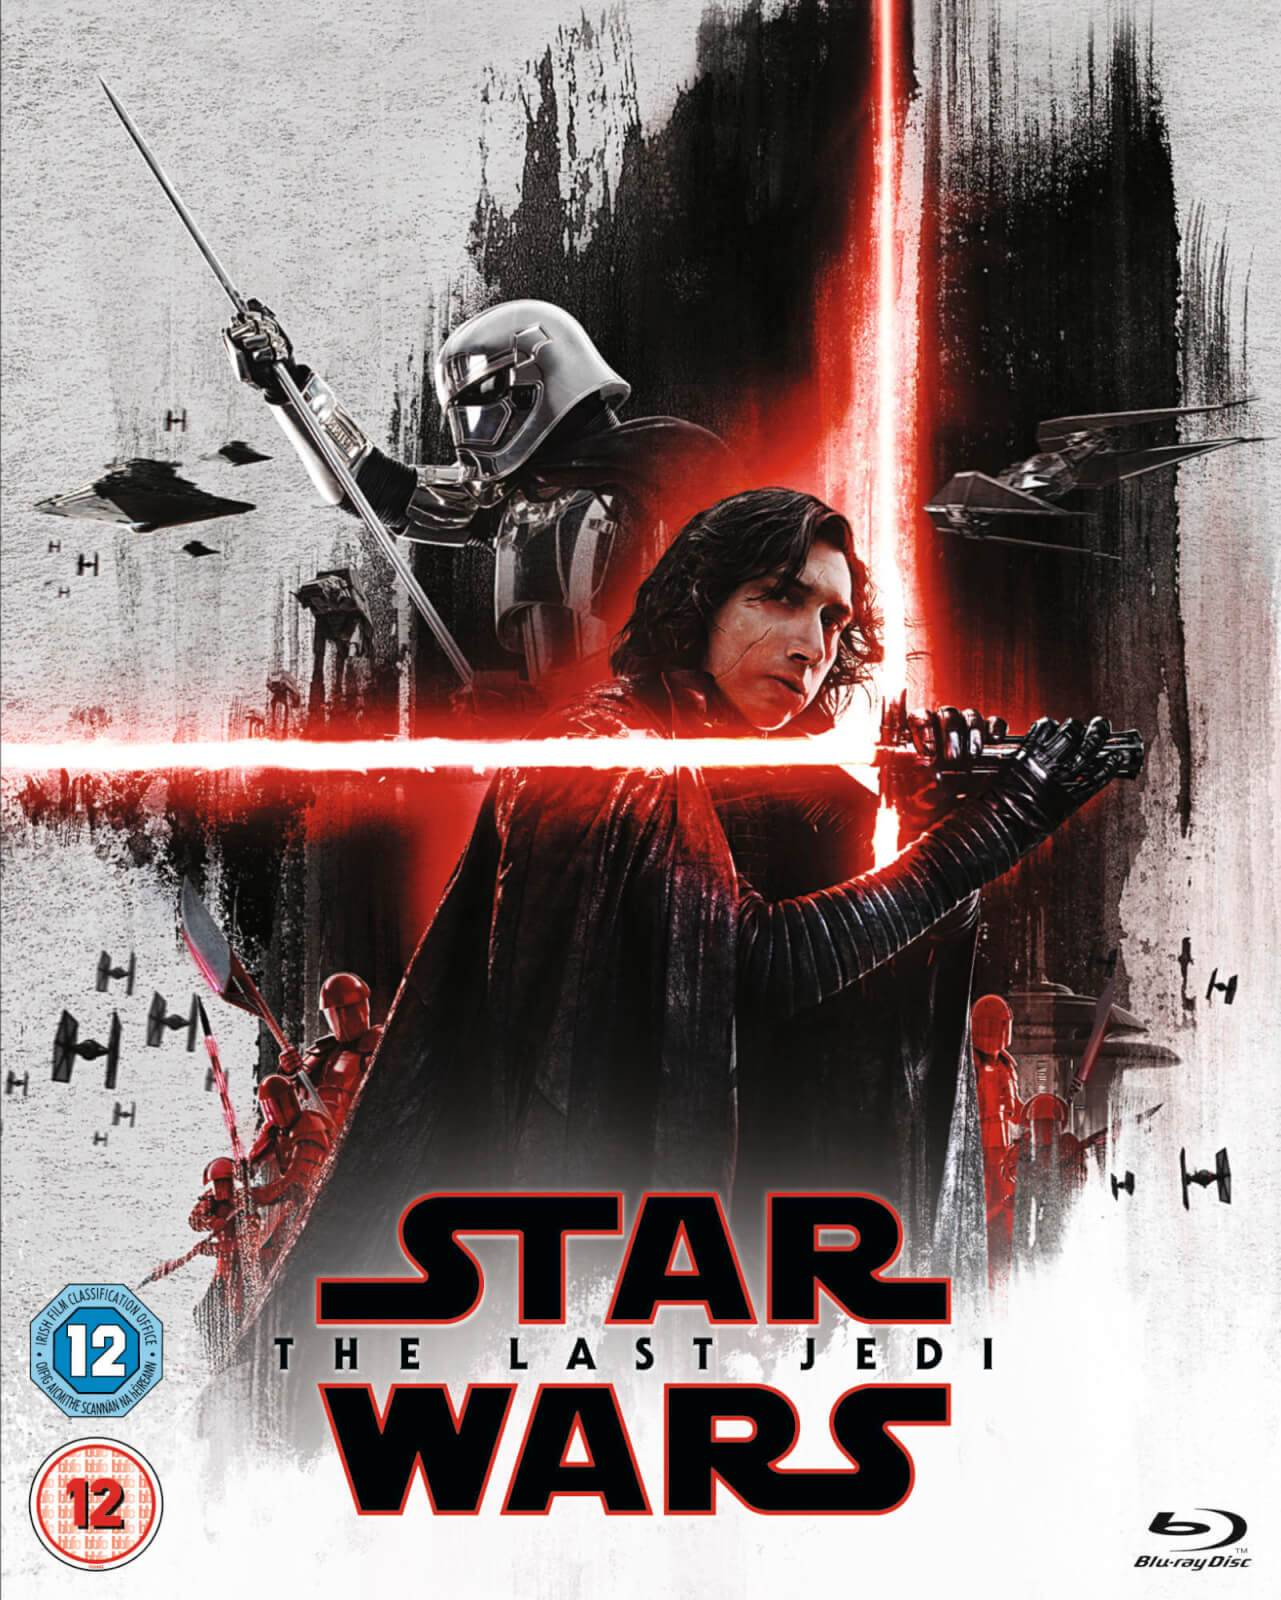 Disney Star Wars: The Last Jedi (With Limited Edition The First Order Artwork Sleeve)